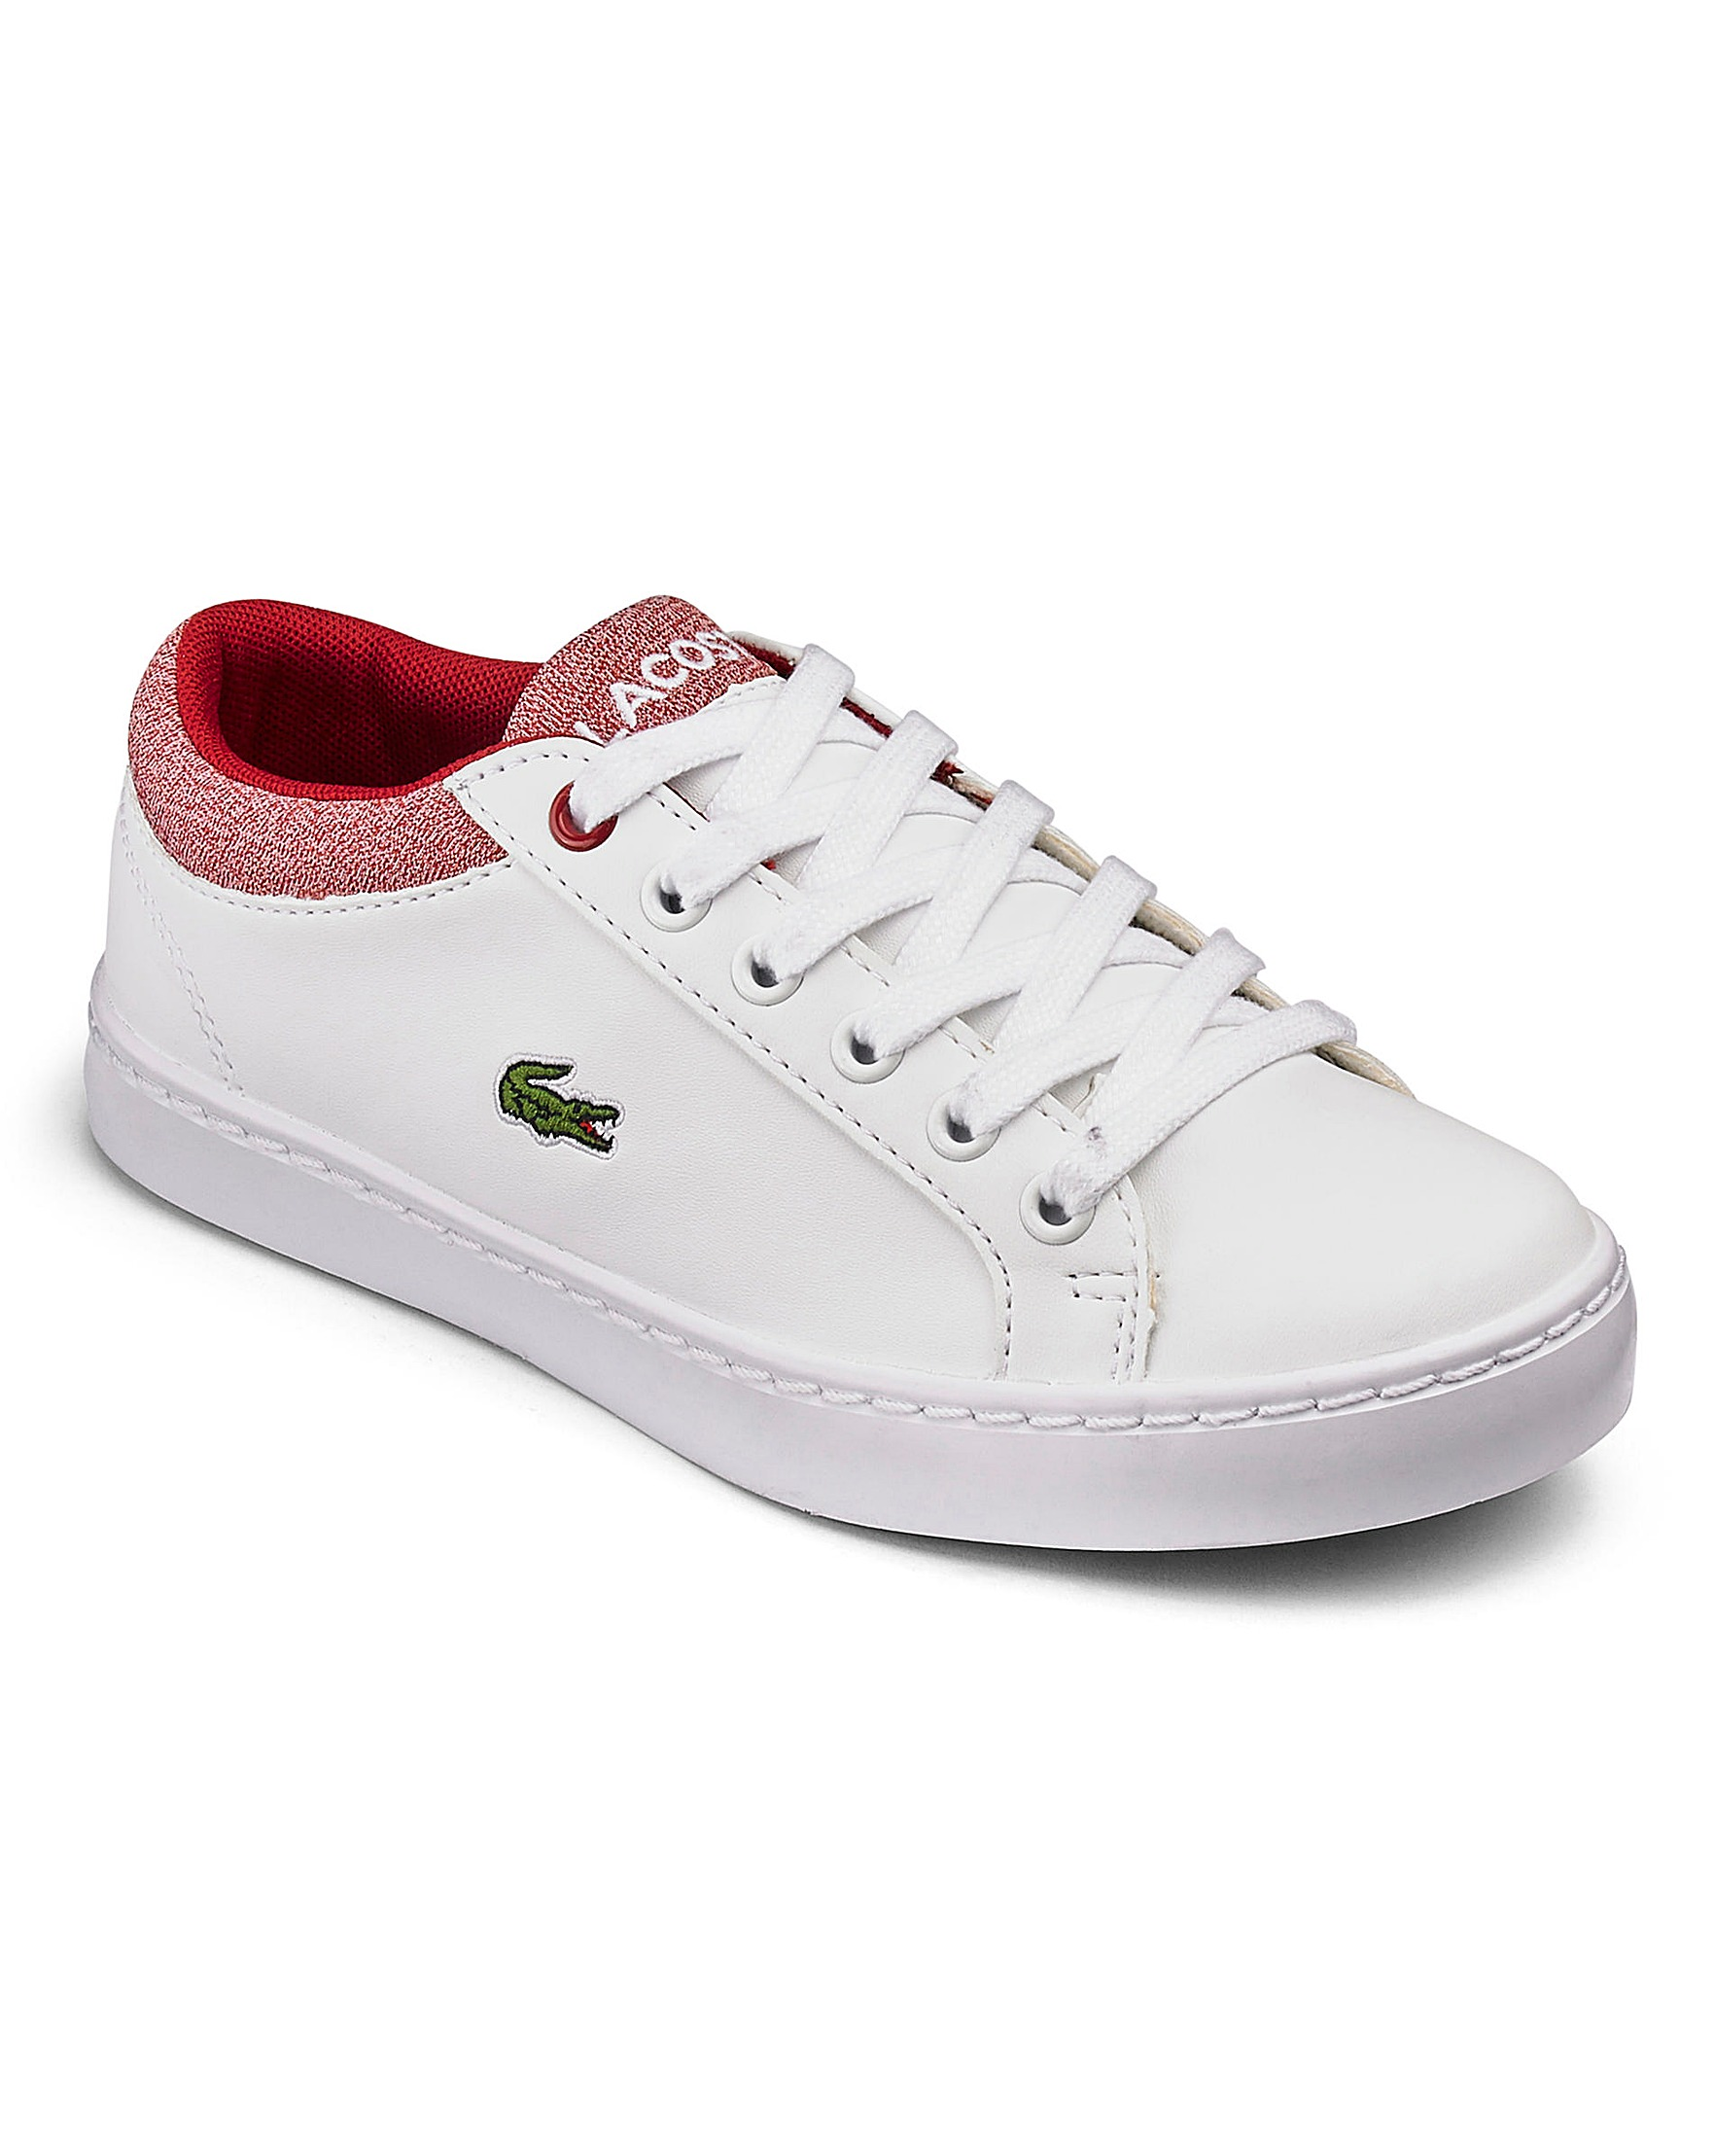 a3f4c0952be80c Lacoste Straightset Boys Junior Trainers